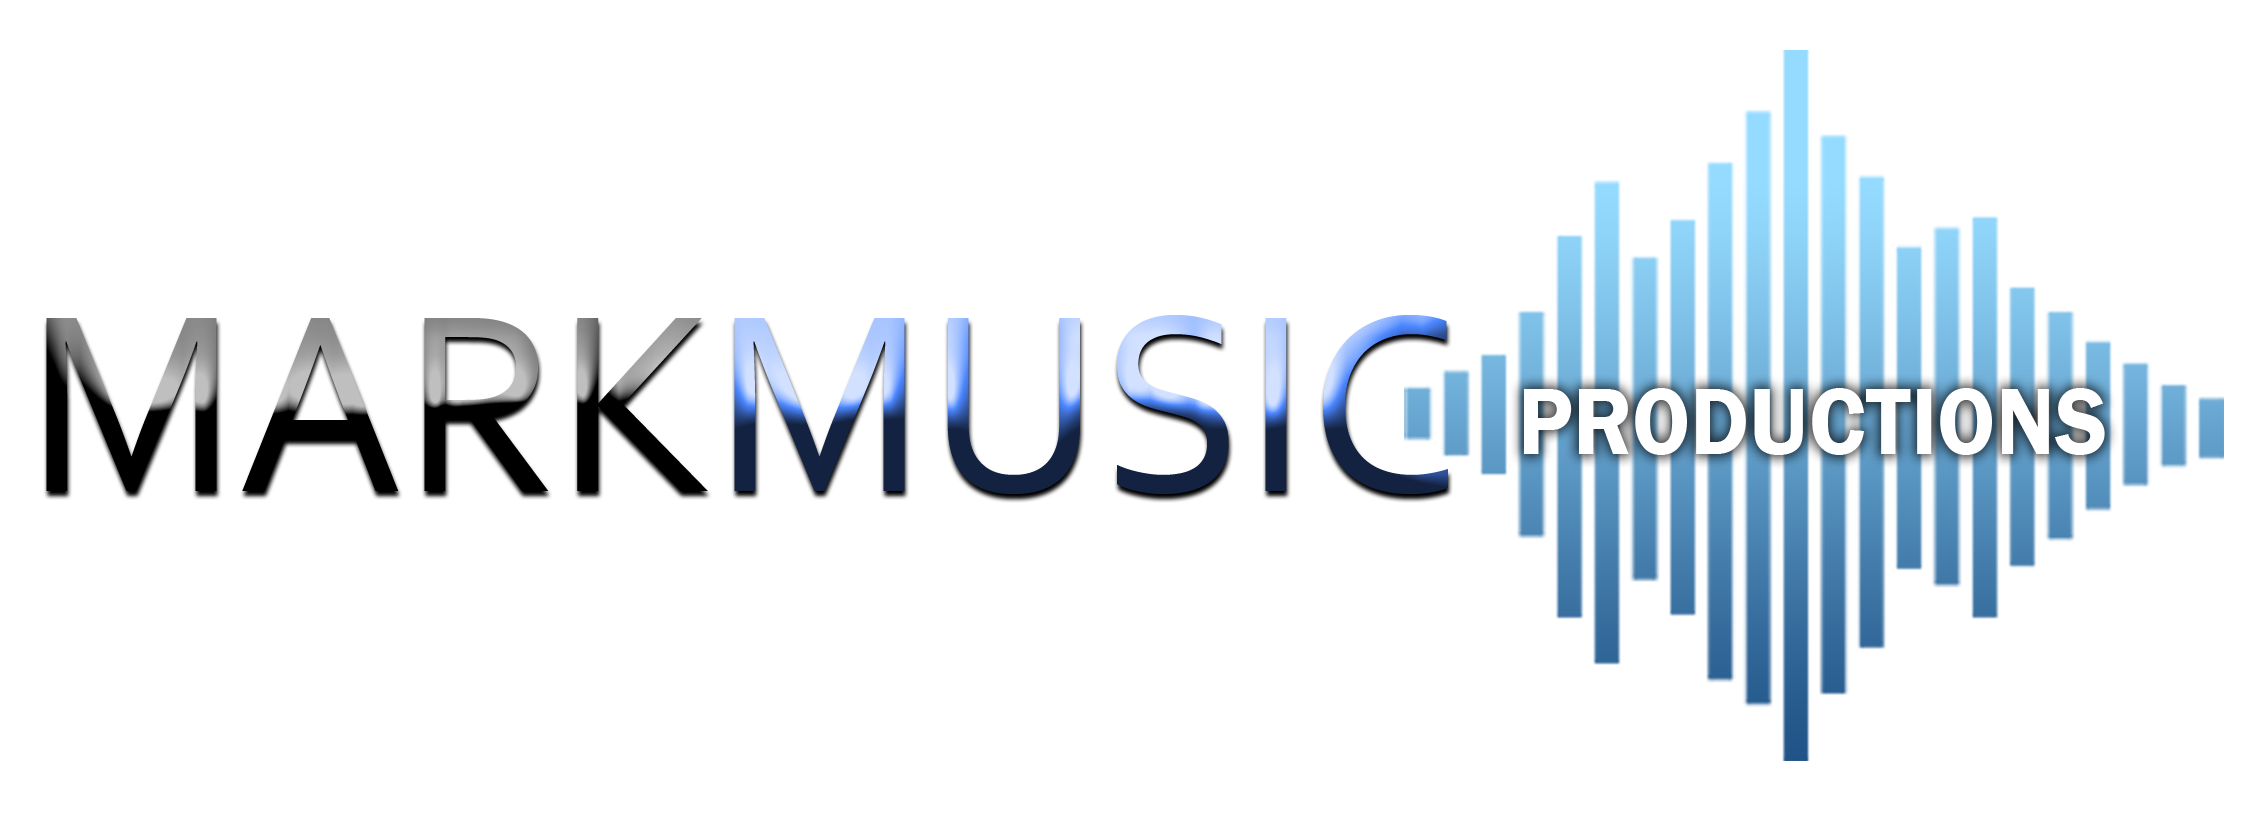 Mark Music Productions | Mark Pepping